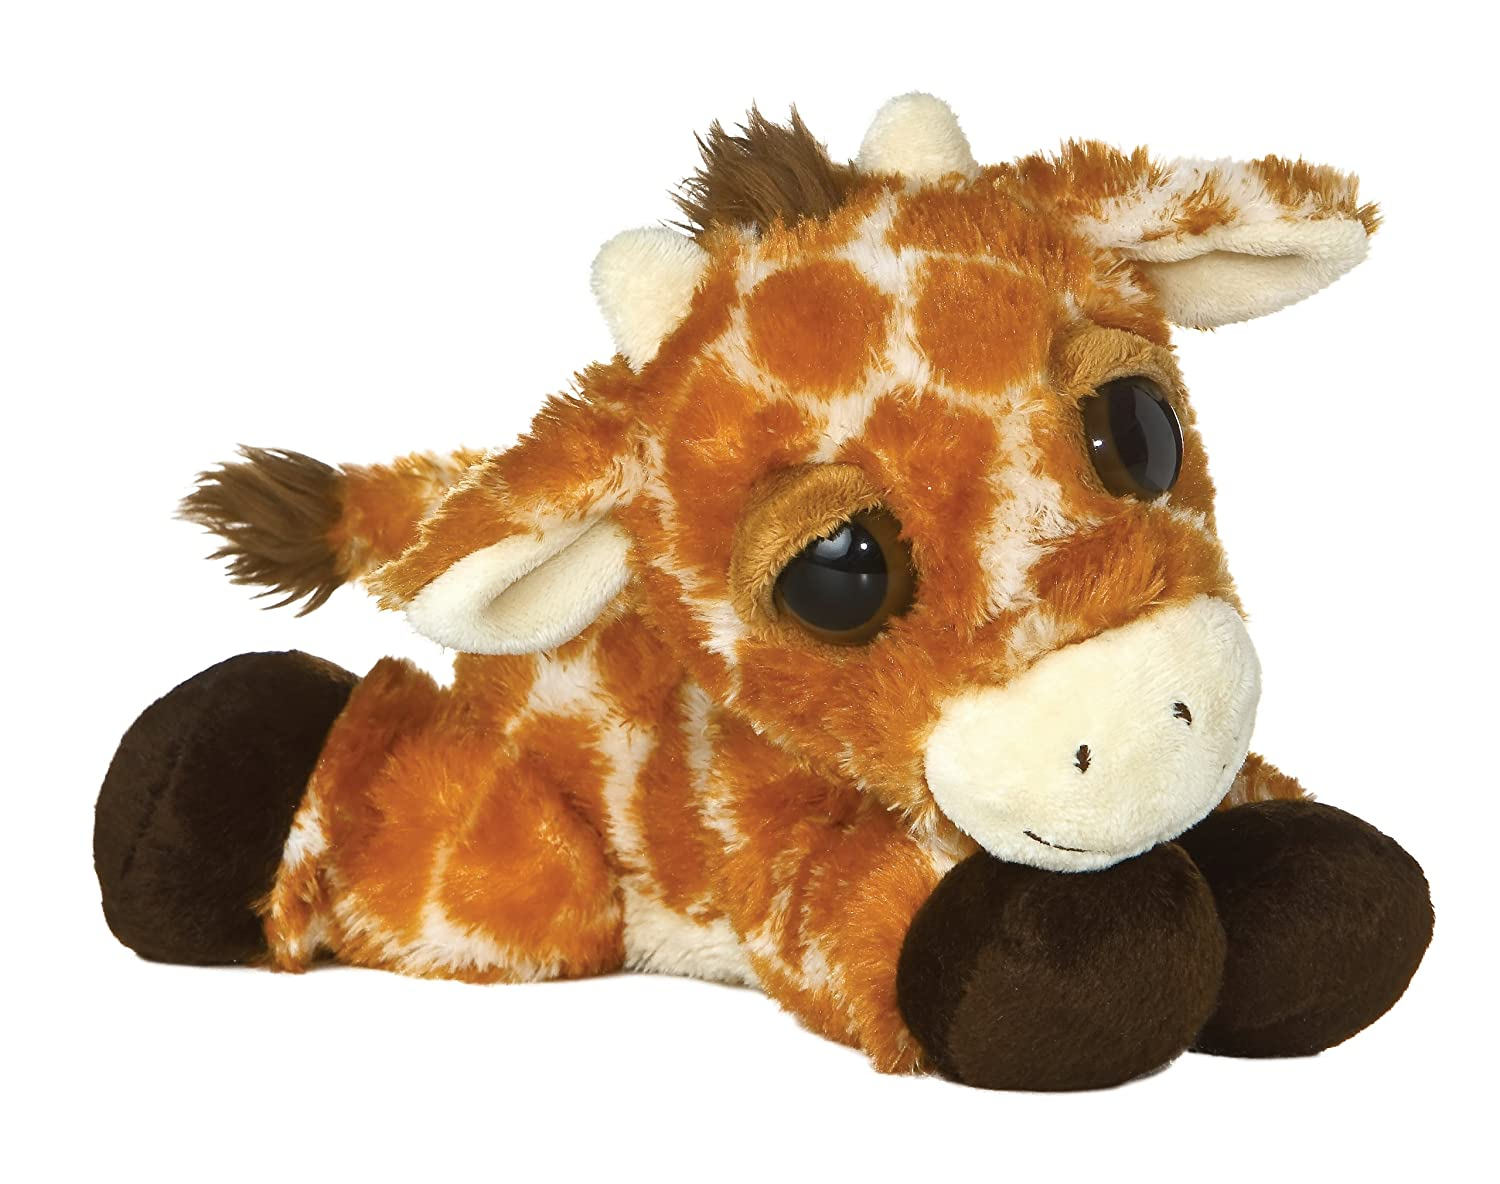 Plush Stuffed Animal Toys : Little giraffe stuffed animals and plush soft toys